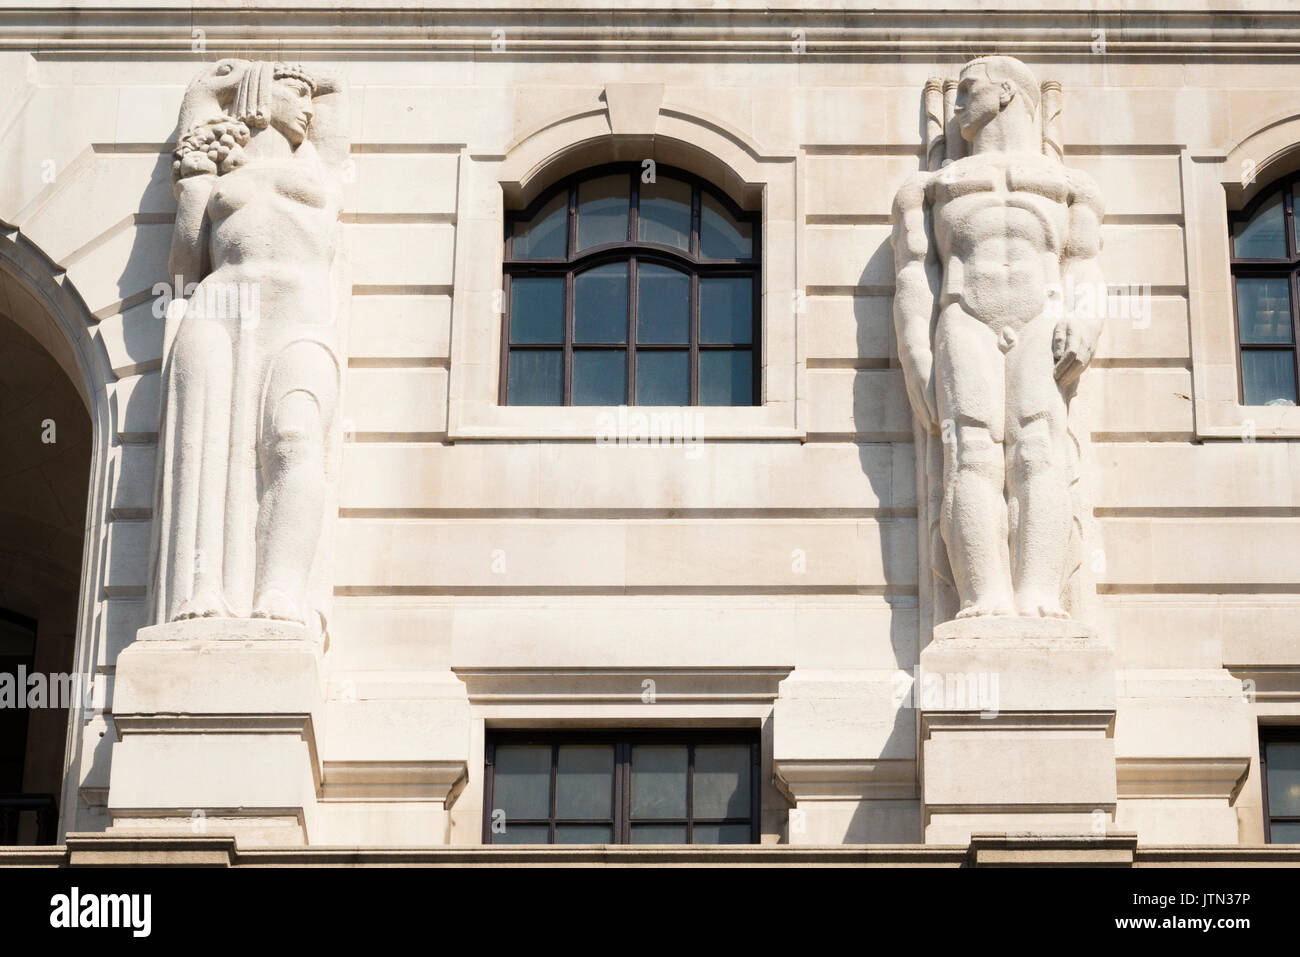 UK London City Financial District The Bank of England HQ on Threadneedle Street since 1734 rebuilt 1939 The Old Lady building facade established 1694 - Stock Image